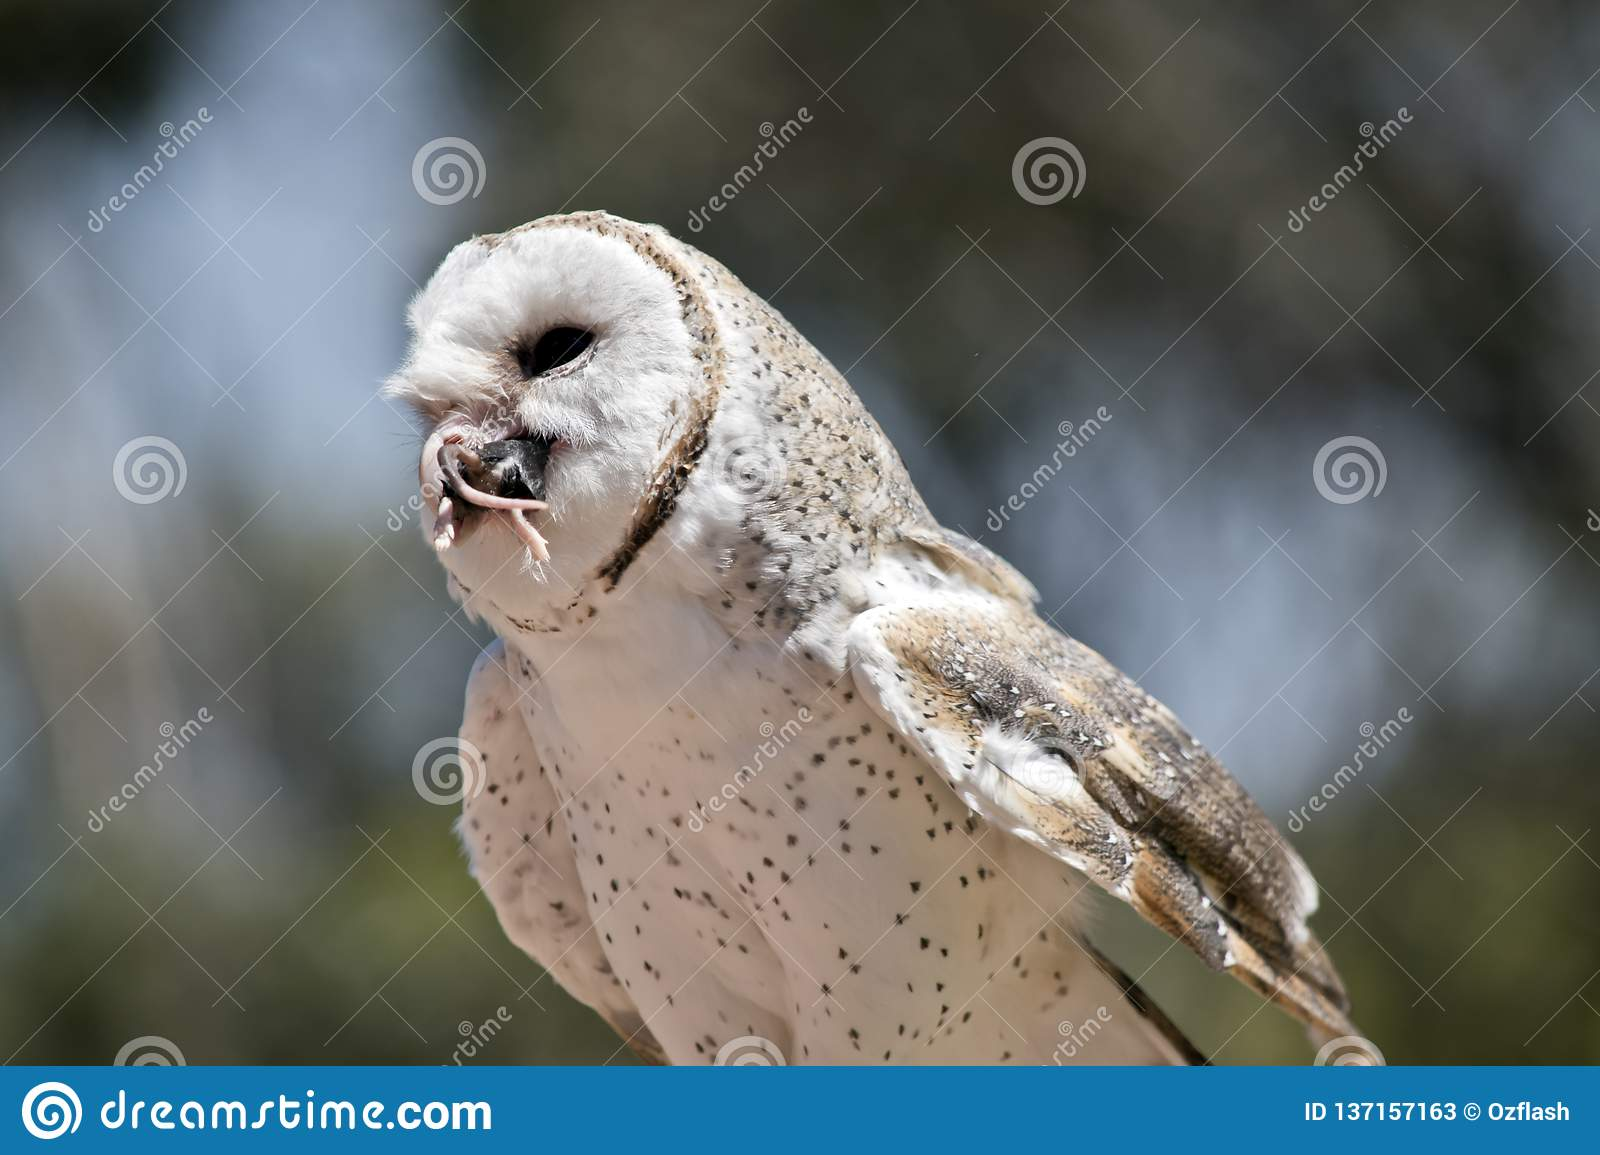 A barn owl stock image. Image of nesting, prey, close ...